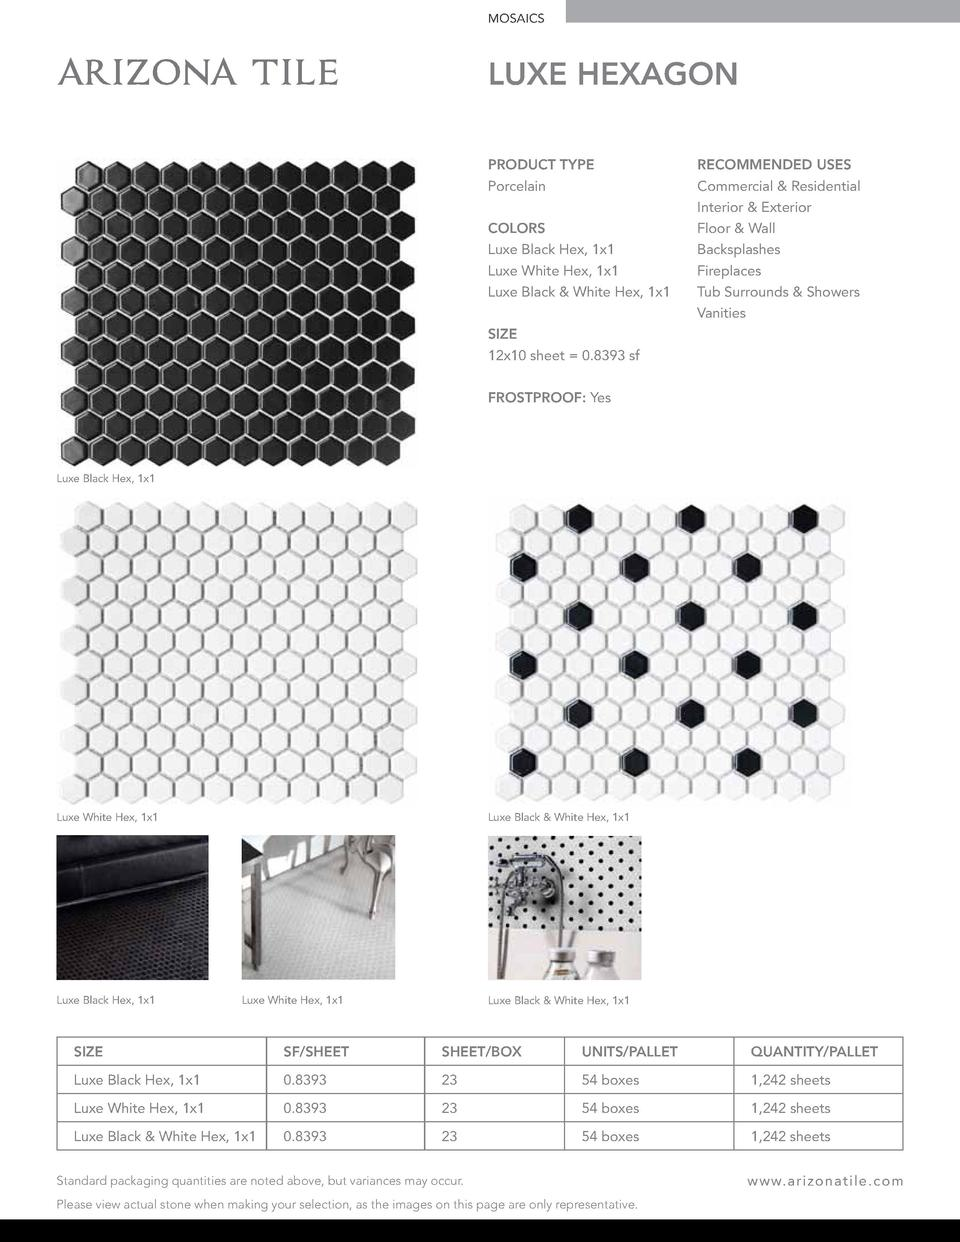 MOSAICS  LUXE HEXAGON PRODUCT TYPE Porcelain COLORS Luxe Black Hex, 1x1 Luxe White Hex, 1x1 Luxe Black   White Hex, 1x1  R...